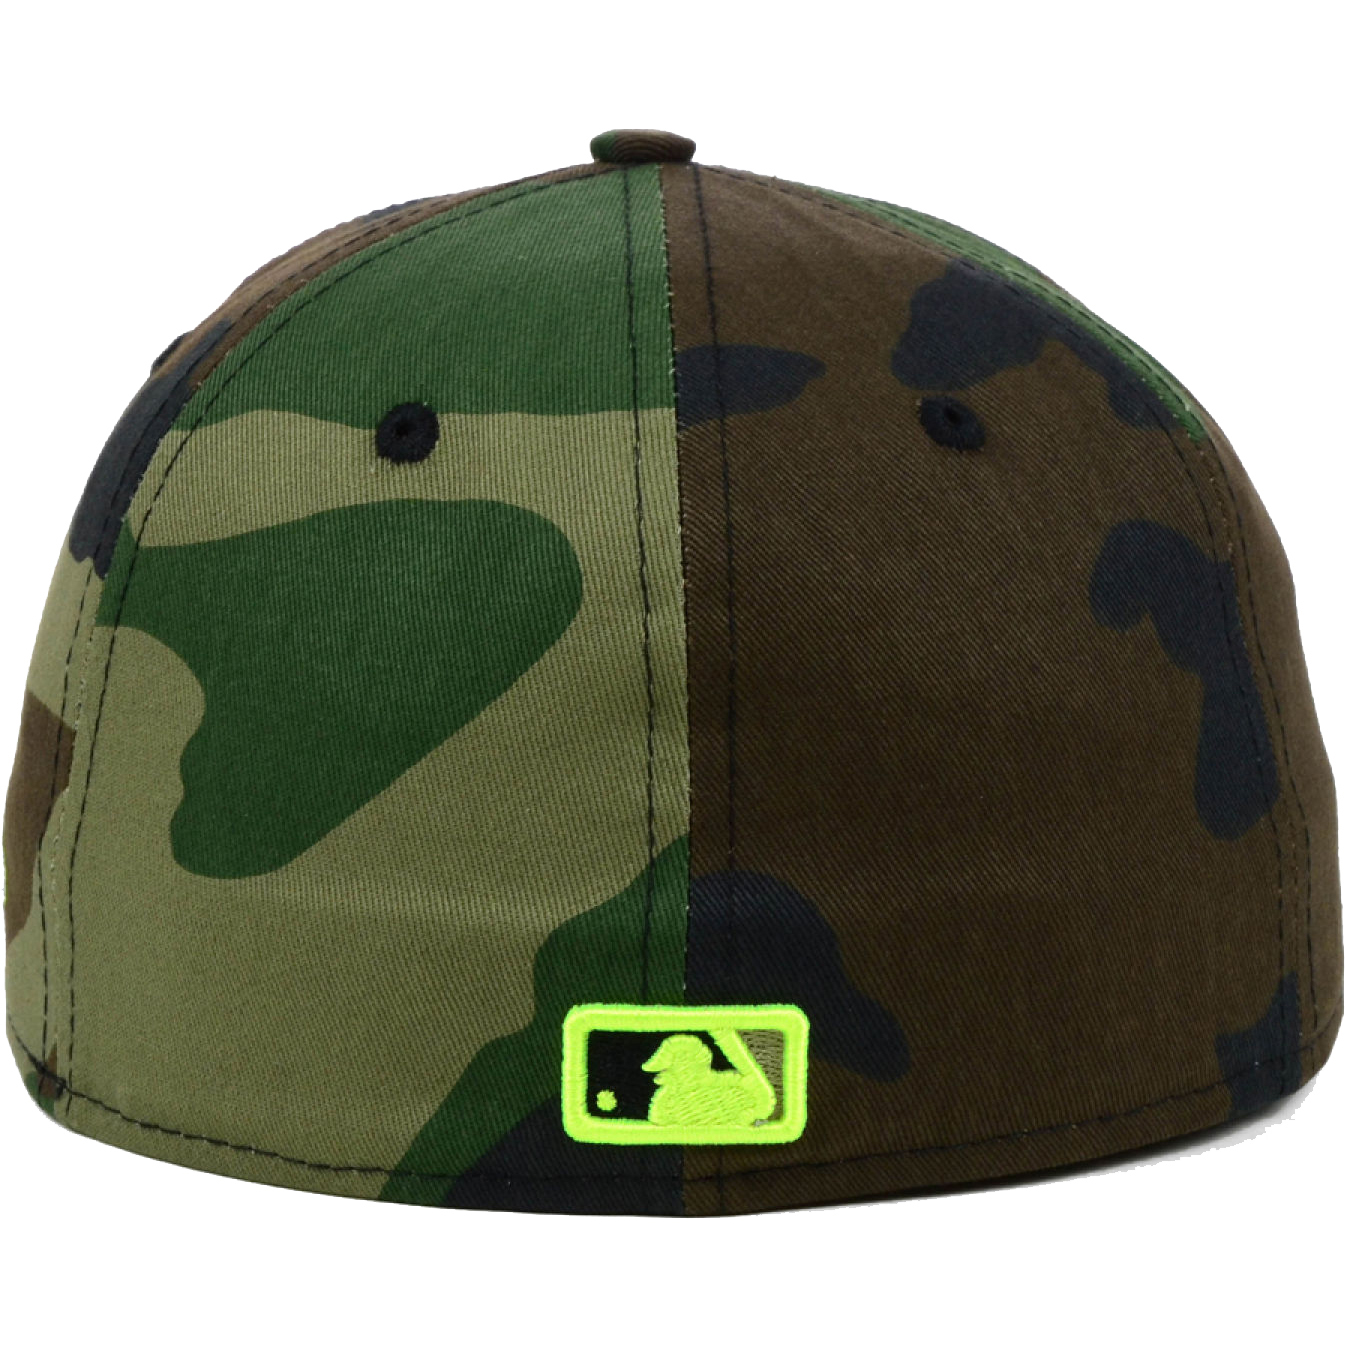 Chicago Cubs New Era Camo Pop Leopard Visor 59Fifty Fitted Hat Cap ... 184668f7518